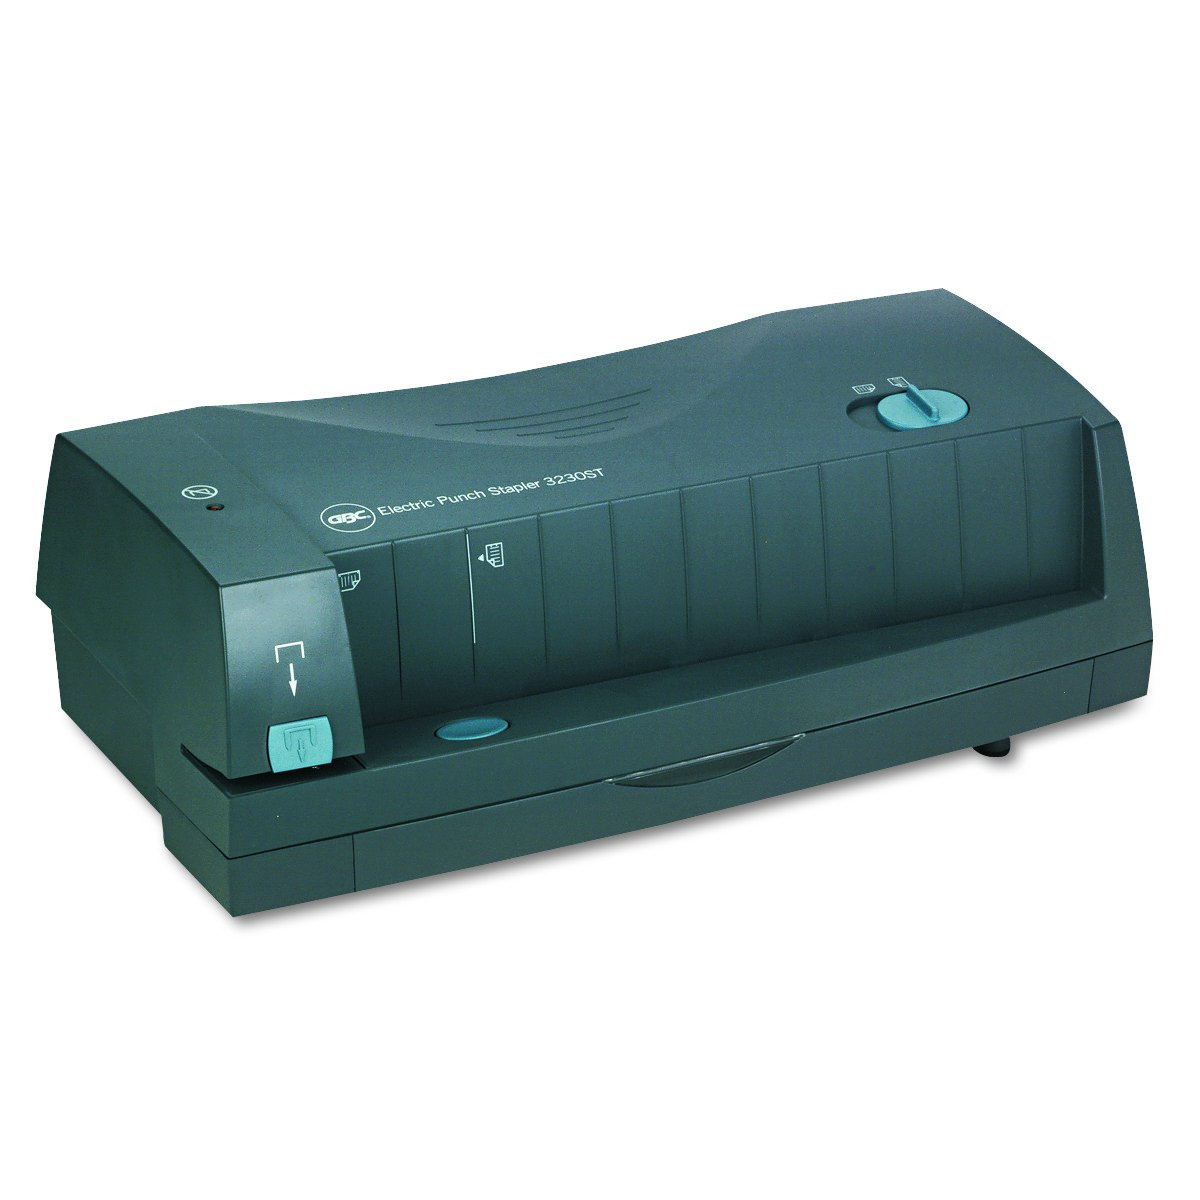 Swingline Electric Paper Punch/Stapler 2 or 3 Hole, 24 Sheet, 3230ST - 7704280